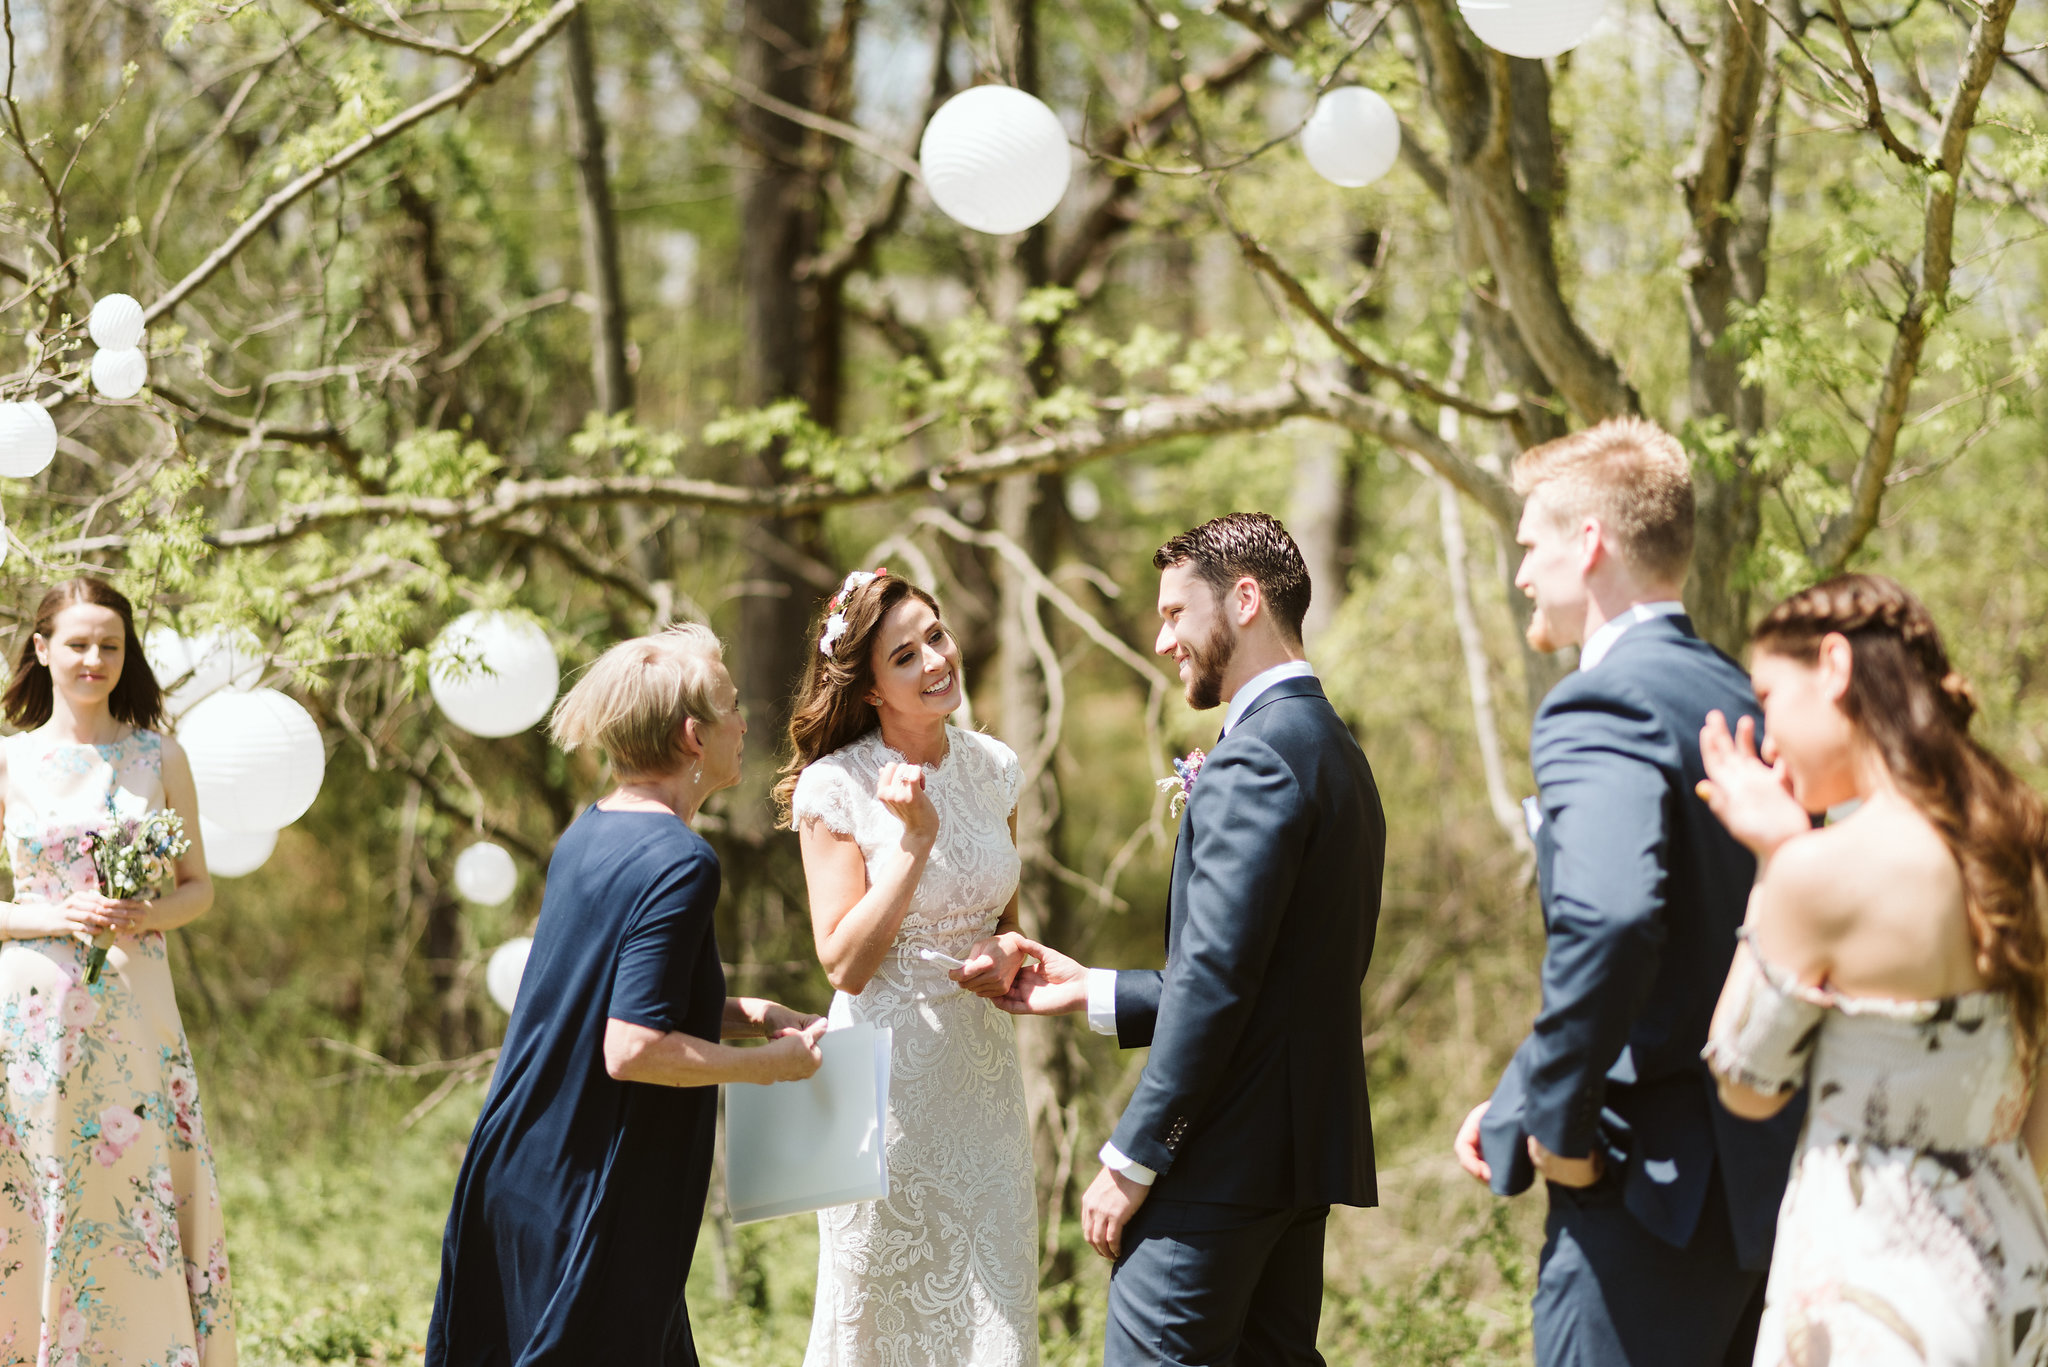 Spring Outdoor Wedding, Park, Baltimore Wedding Photographer, DIY, Classic, Upcycled, Garden Party, Romantic, Bride and Groom Exchanging Vows, The Wedding ProOfficiant, BHLDN Dress